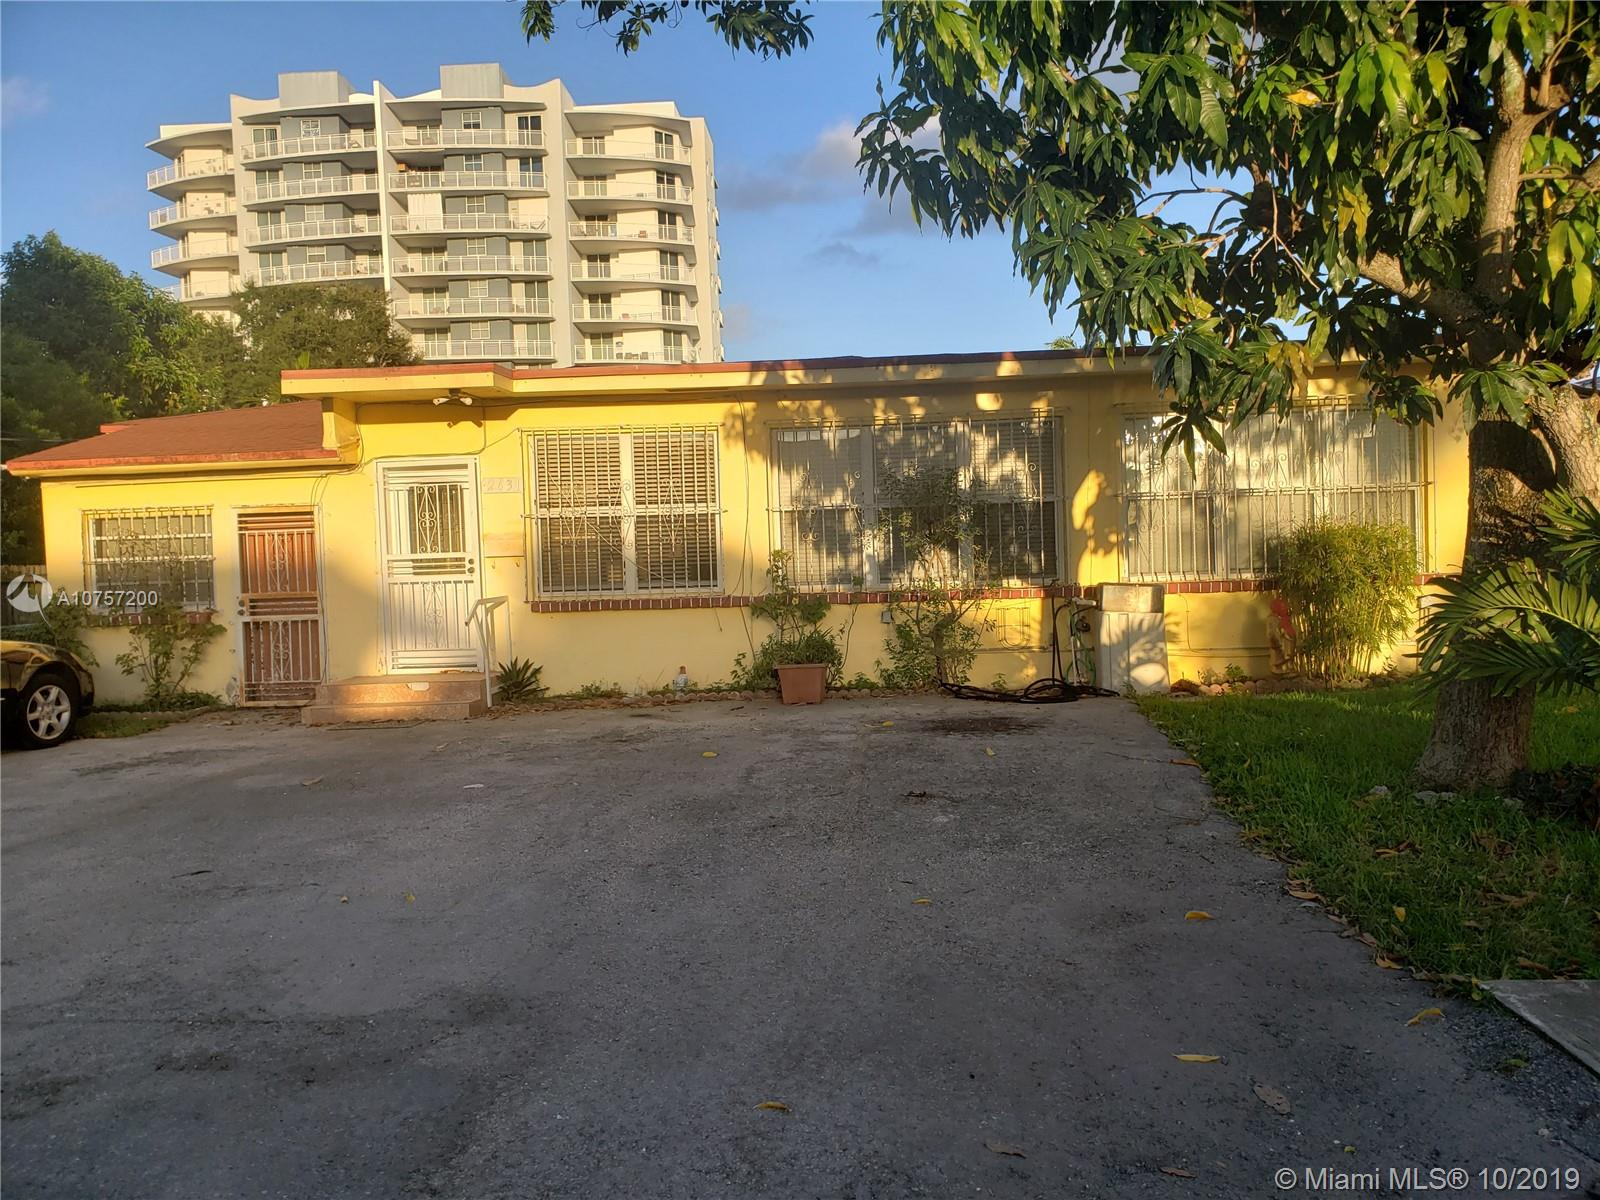 4/3 - Single family home, ceramic Tile floors , formal dining room area, oversized  foyer to huge living/dining spacious kitchen. Bedrooms are good size   new a/c installed 2 years ago.  Roof Replaced a few years ago, mango tree.  Walk to Coconut Grove metro rail, short drive or Lyft to Brickell. Perfect for starter home. This one will sell quick so make your appointment today!.